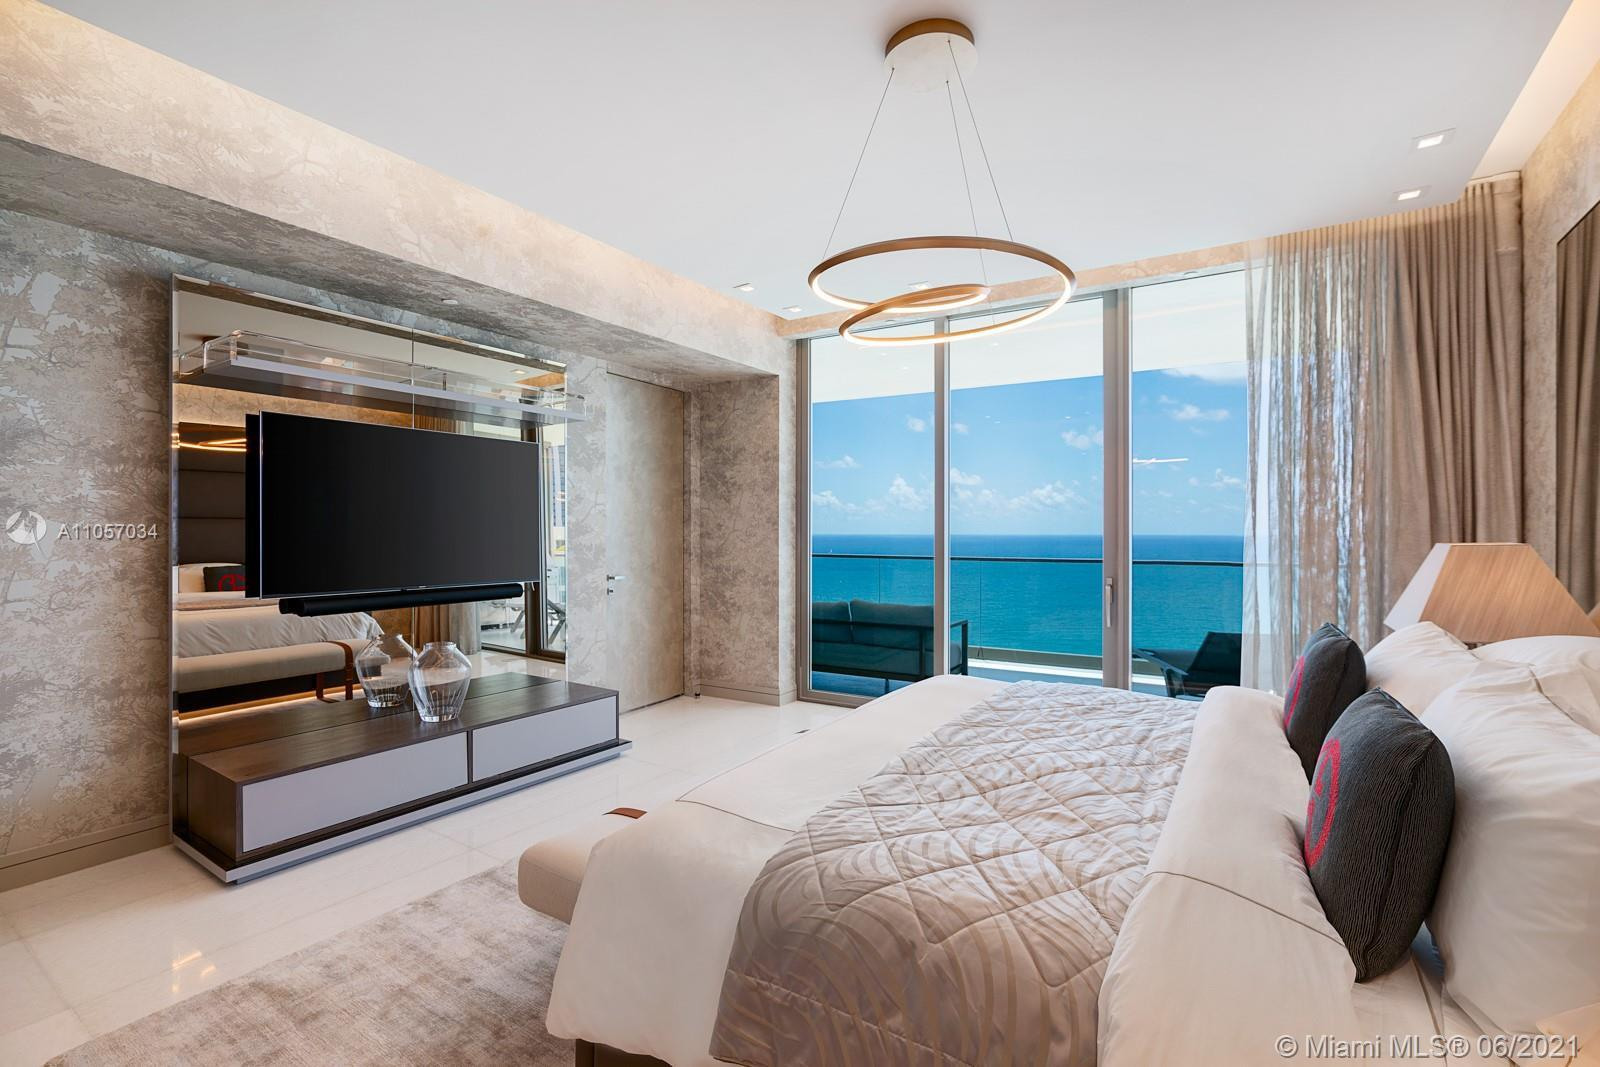 Designed by Giorgio Armani and architect César Pelli, this one-of-a-kind unit at the Residences by A